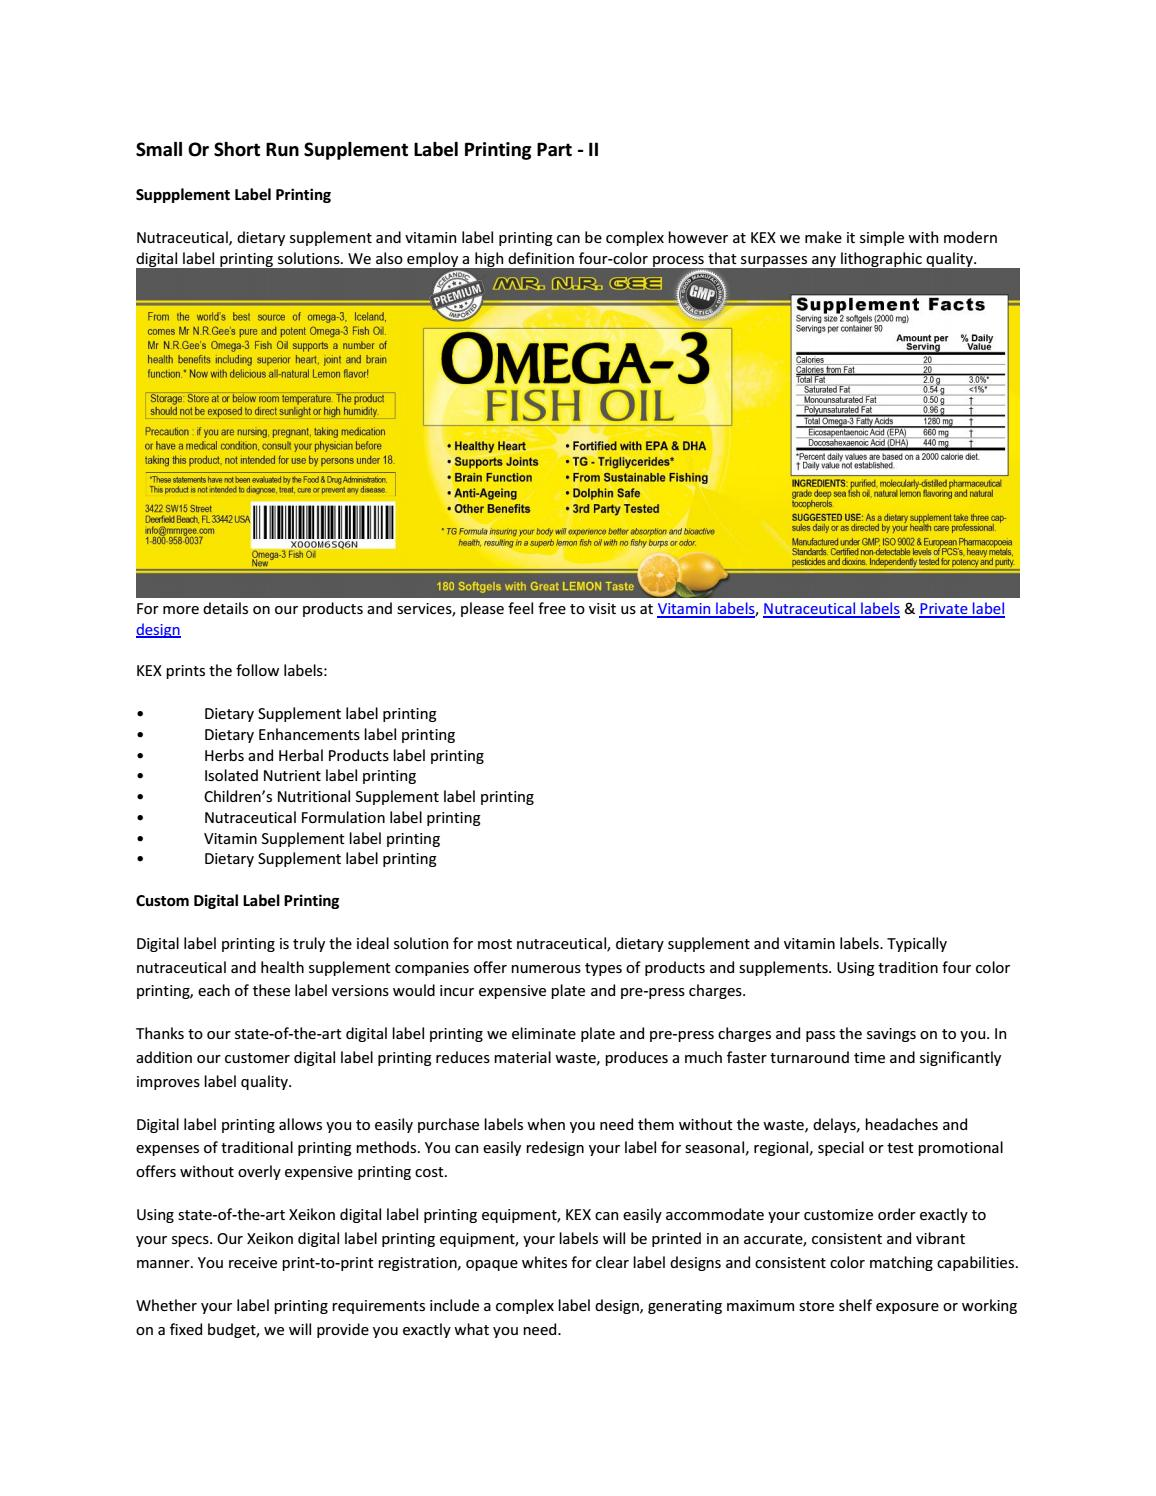 Small or short run supplement label printing part ii by